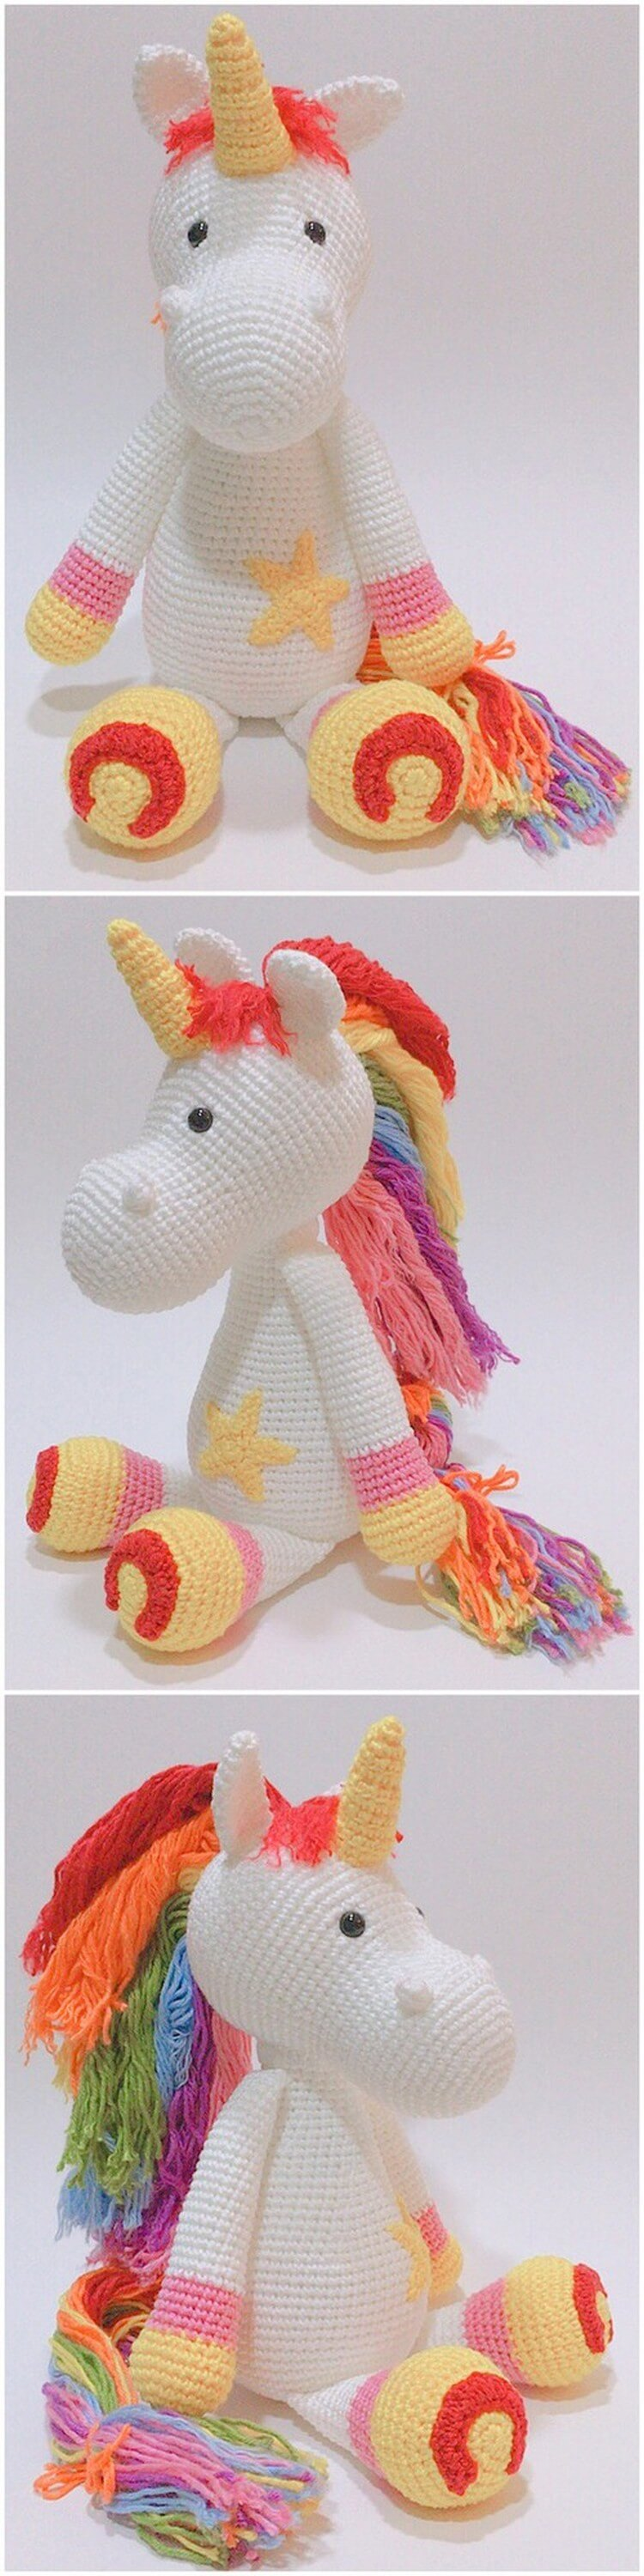 Crochet Unicorn Pattern (70)